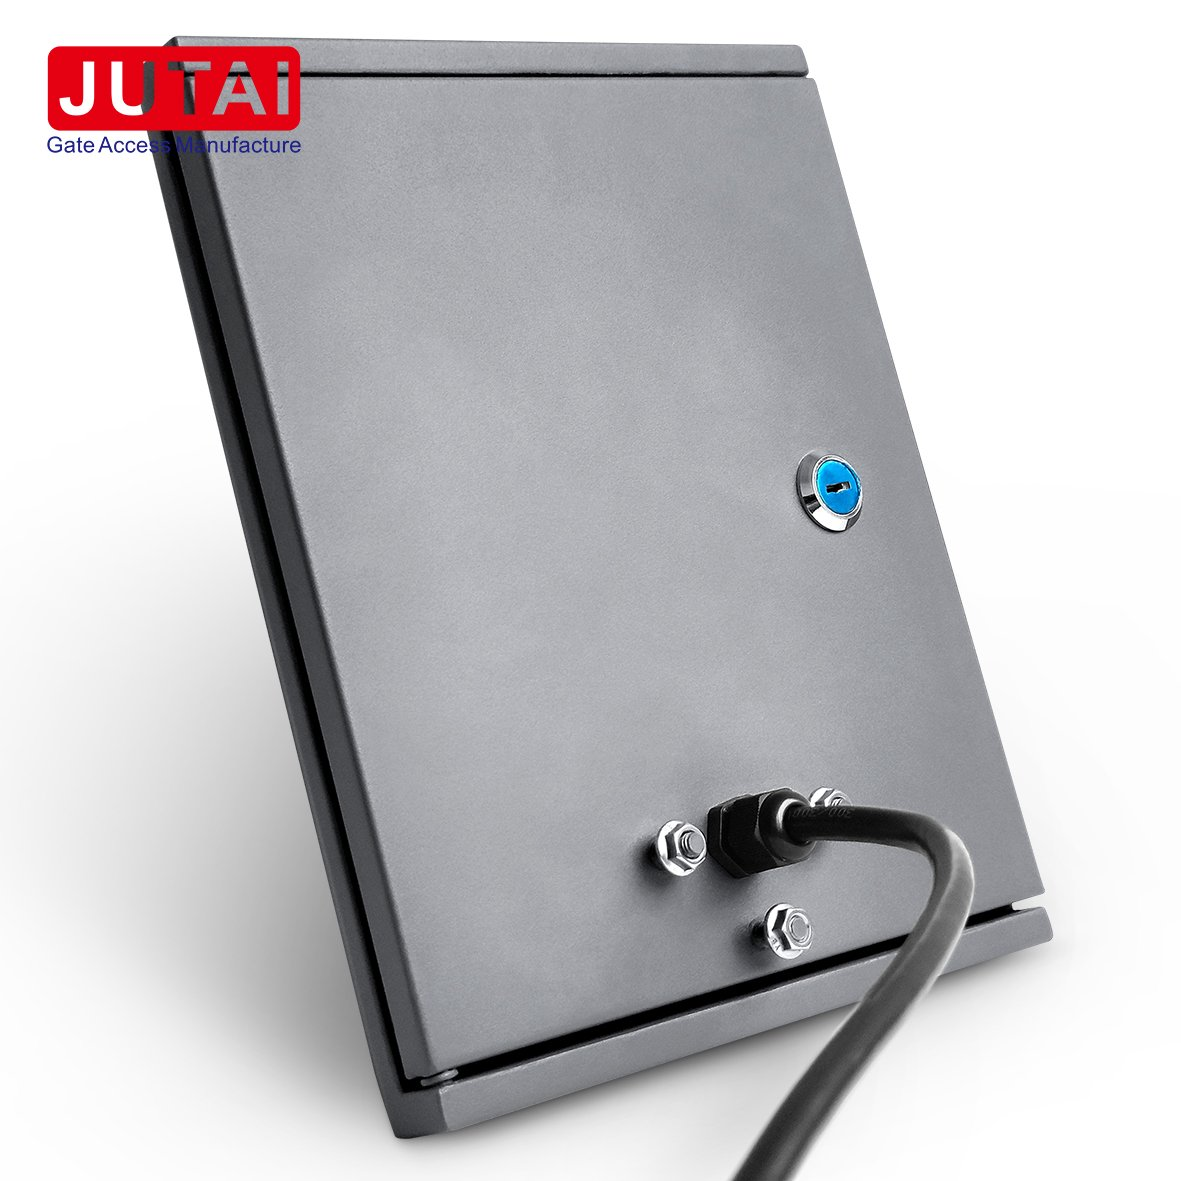 JUTAI Bluetooth long range reader with access control system